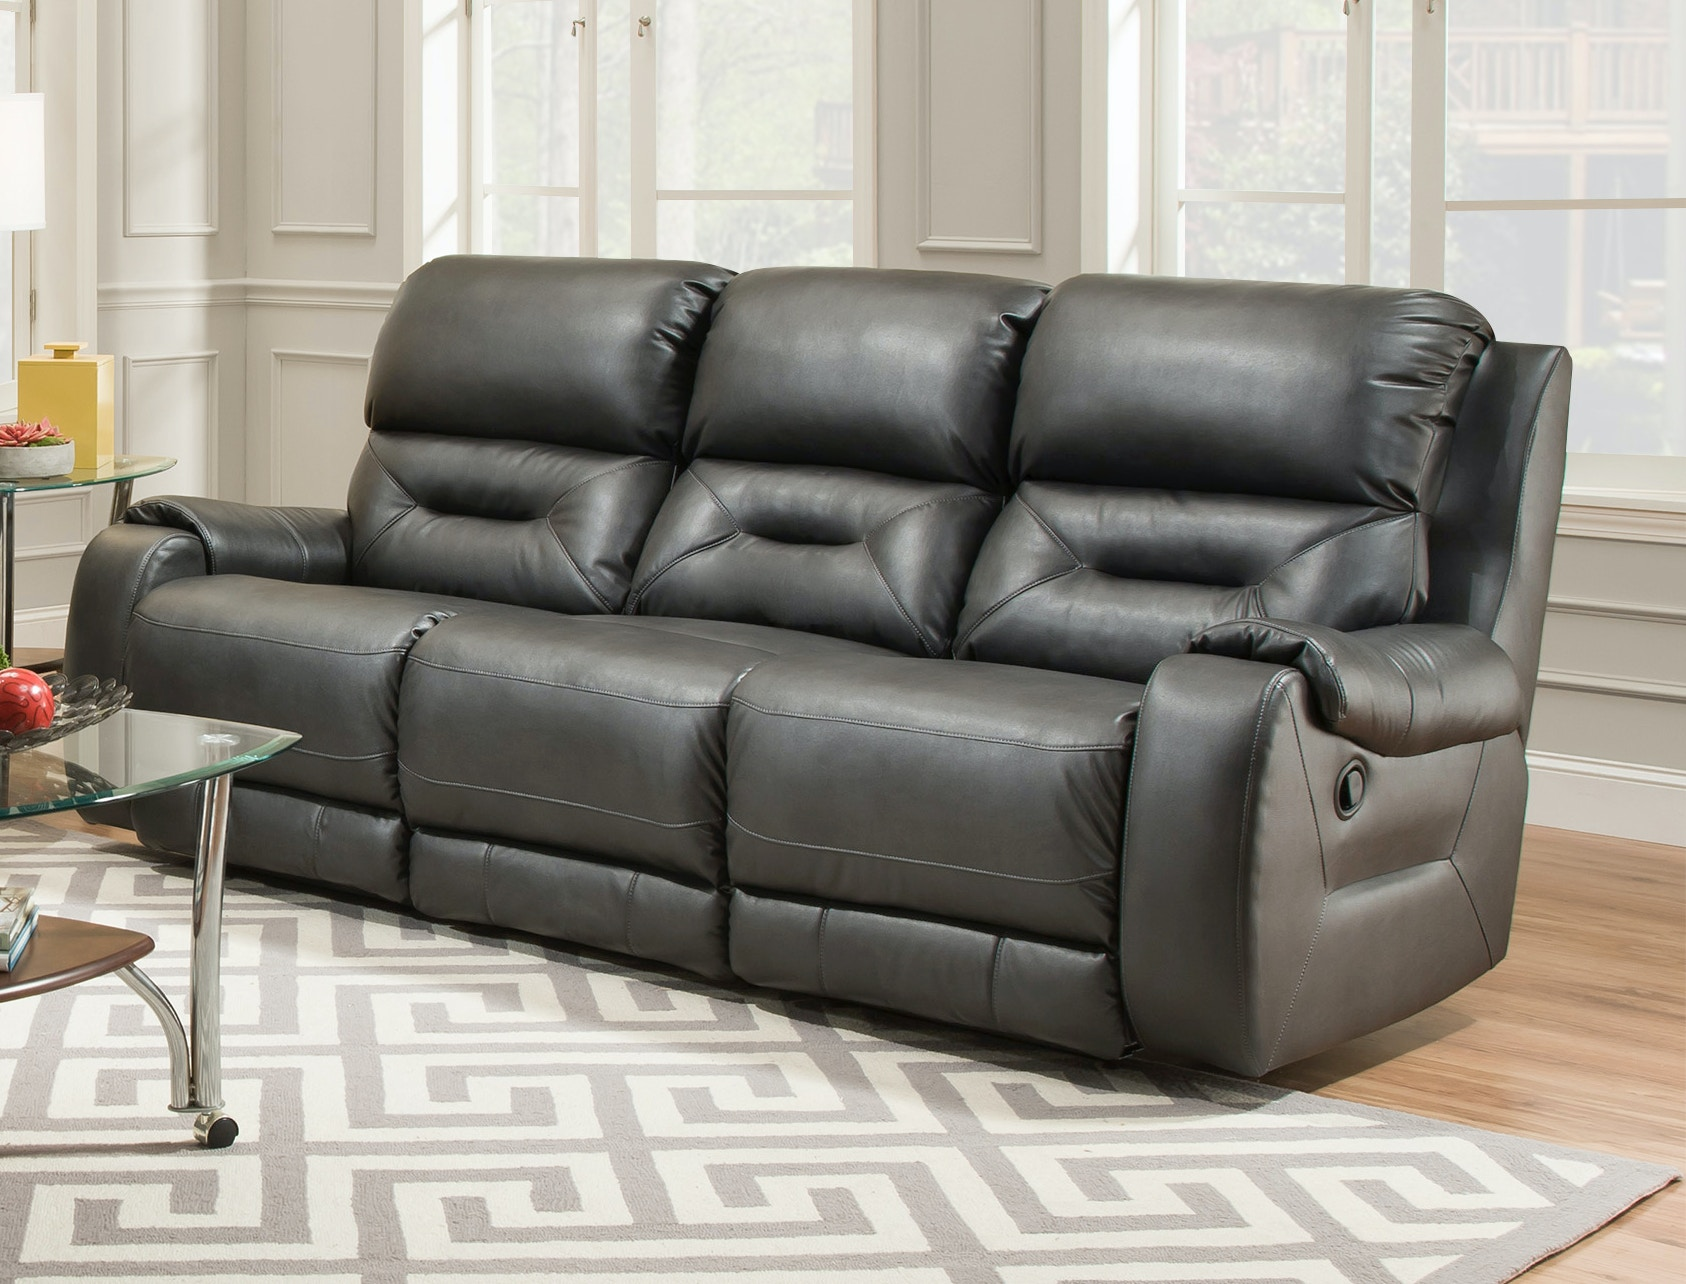 Southern Motion Urban Triple Reclining Sofa 045710 & Southern Motion Living Room Urban Triple Reclining Sofa 045710 ... islam-shia.org